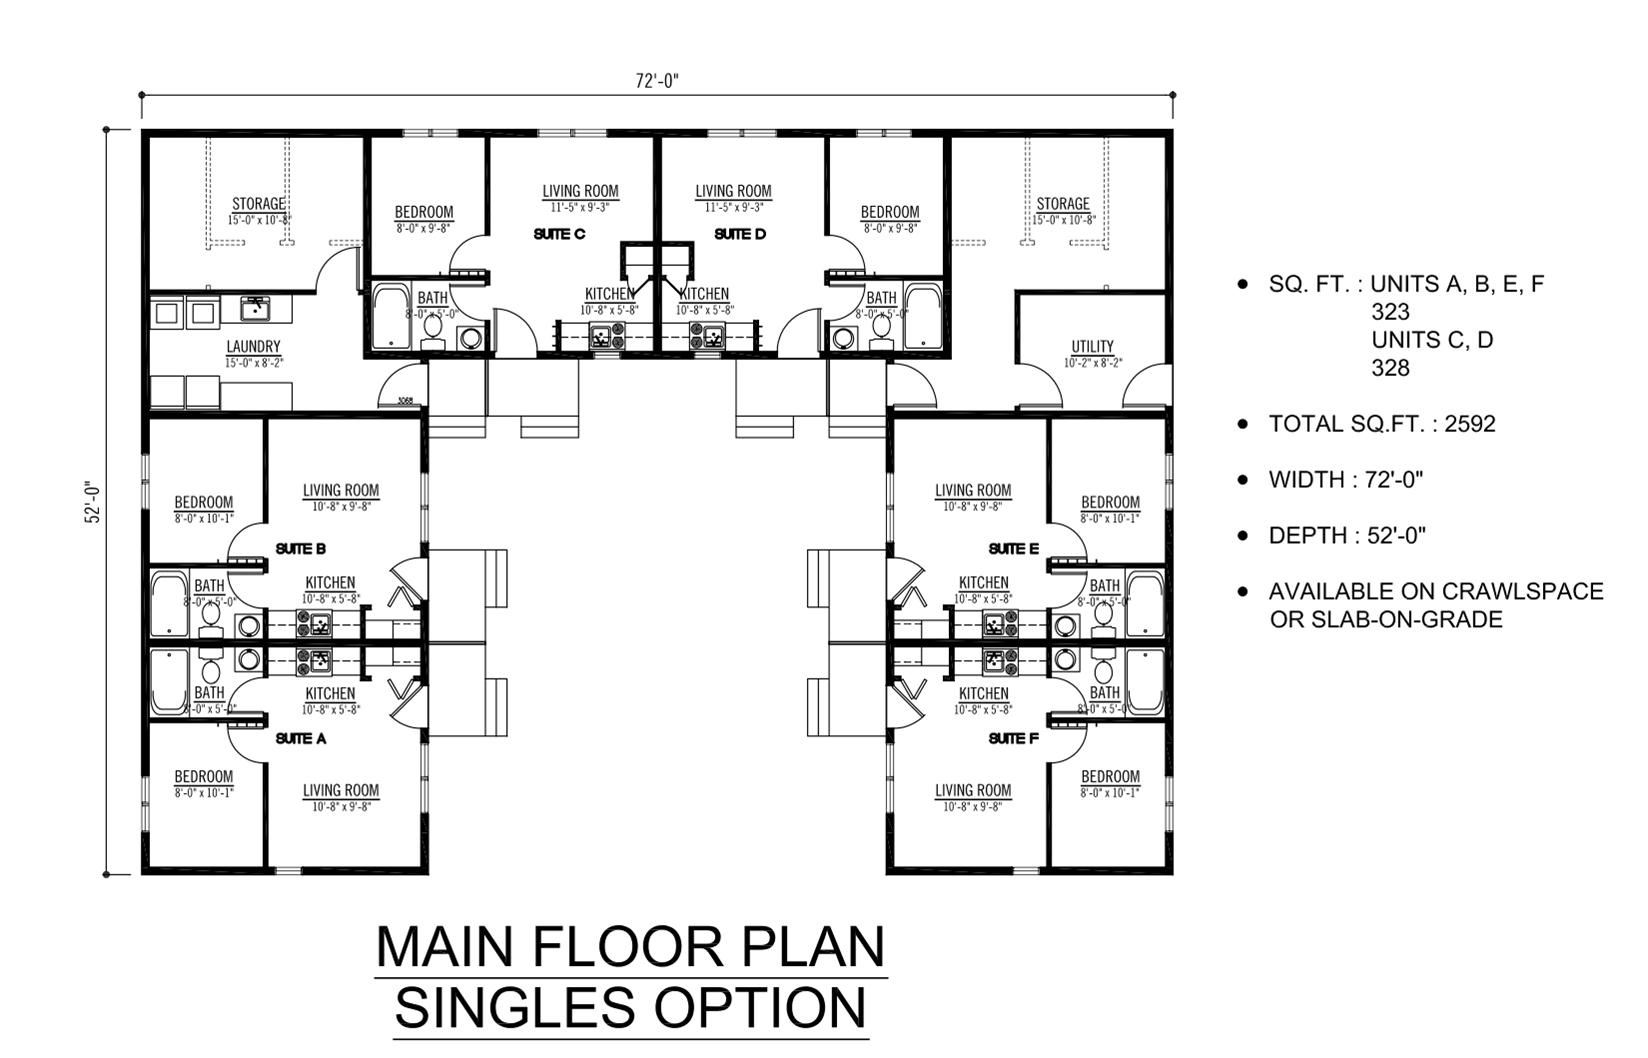 Stunning 6 plex floor plans ideas home building plans for 6 plex floor plans